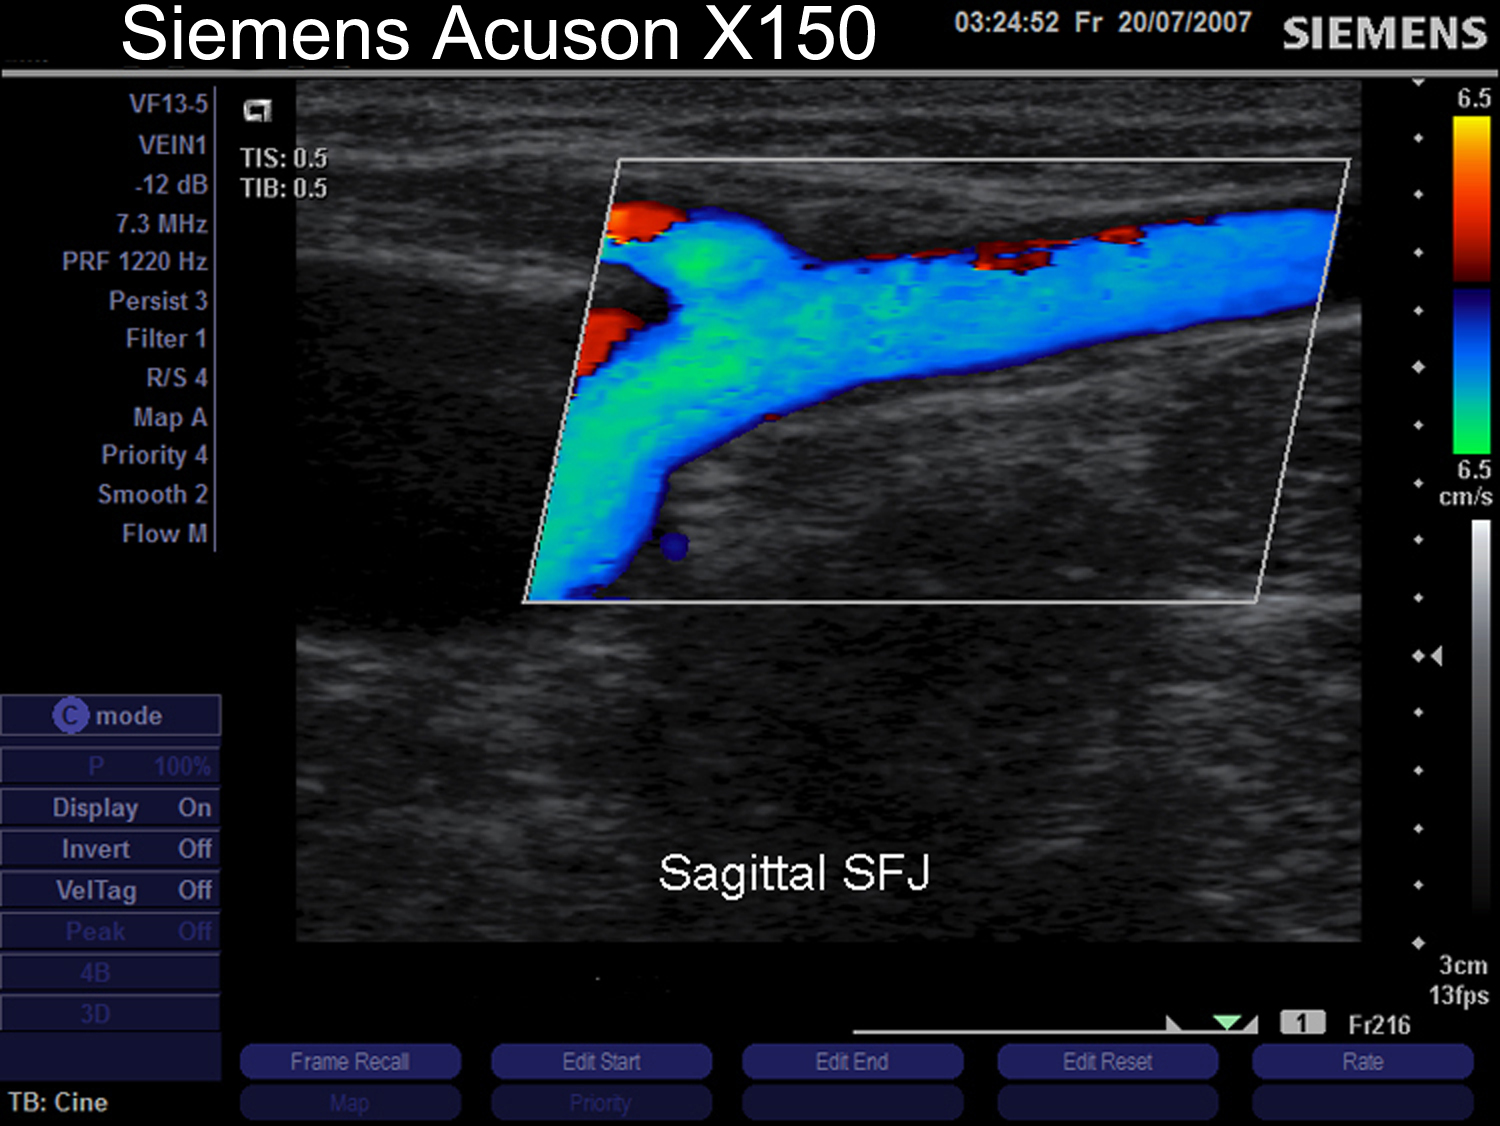 Siemens Acuson x150 ultrasound machine